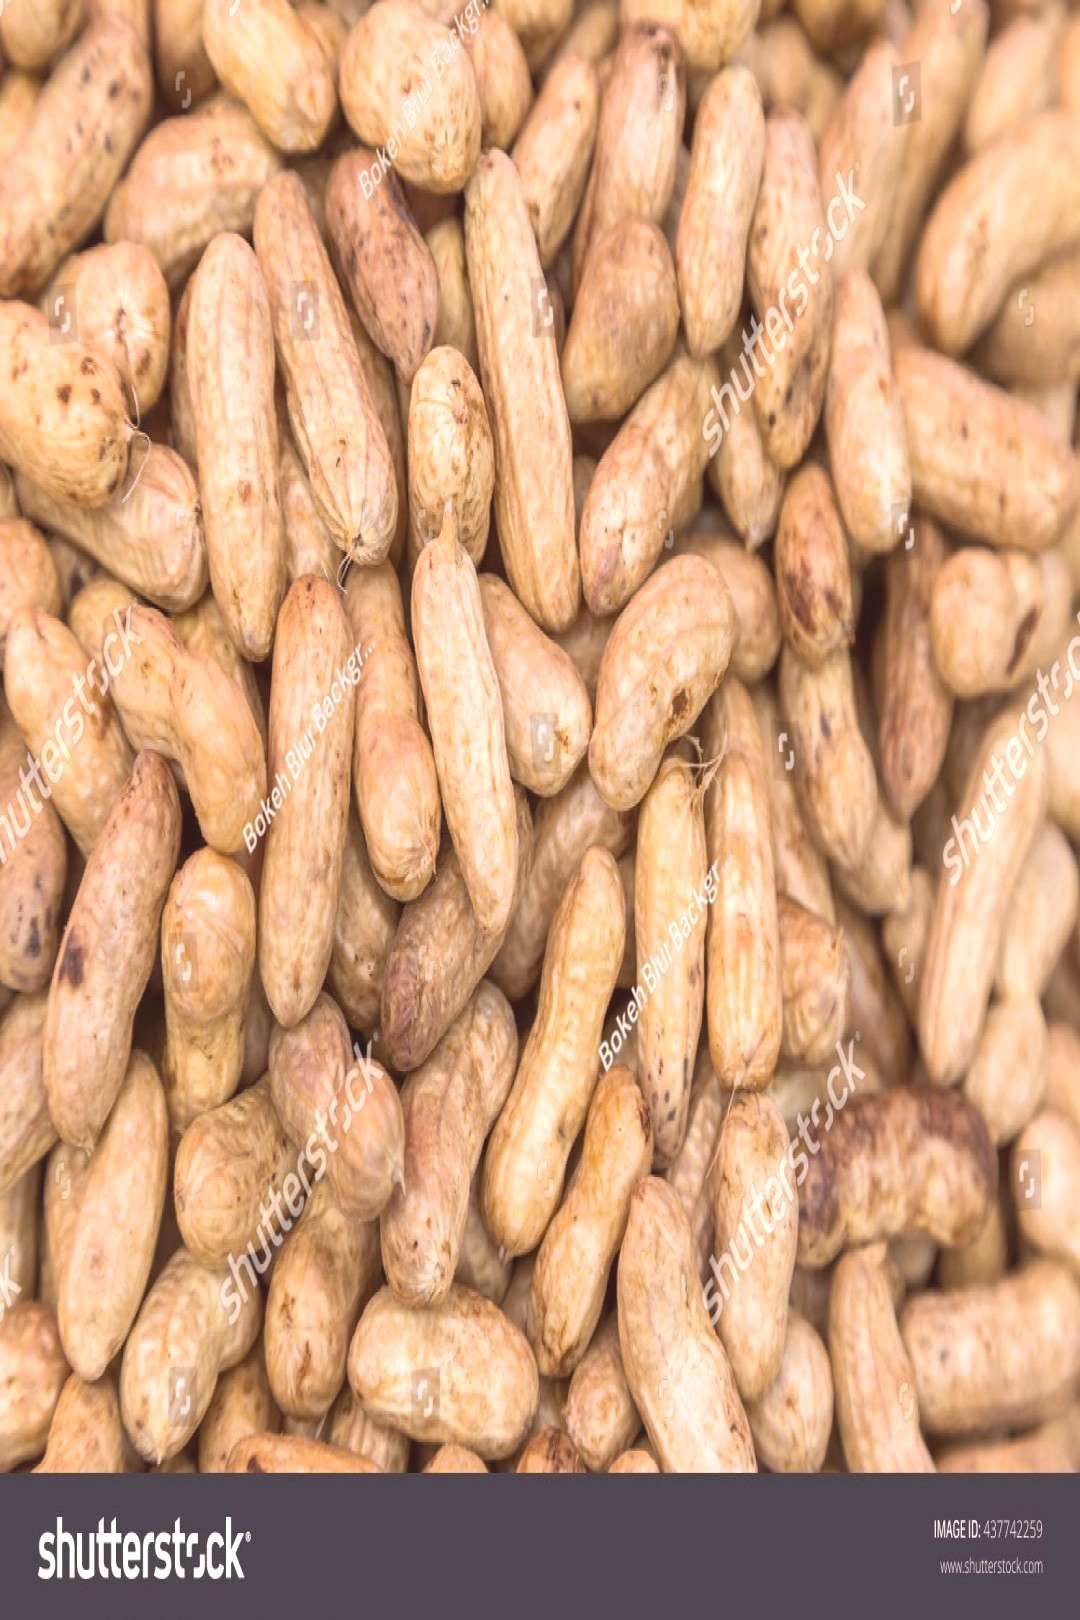 Many peanuts in shells use for backgound ,